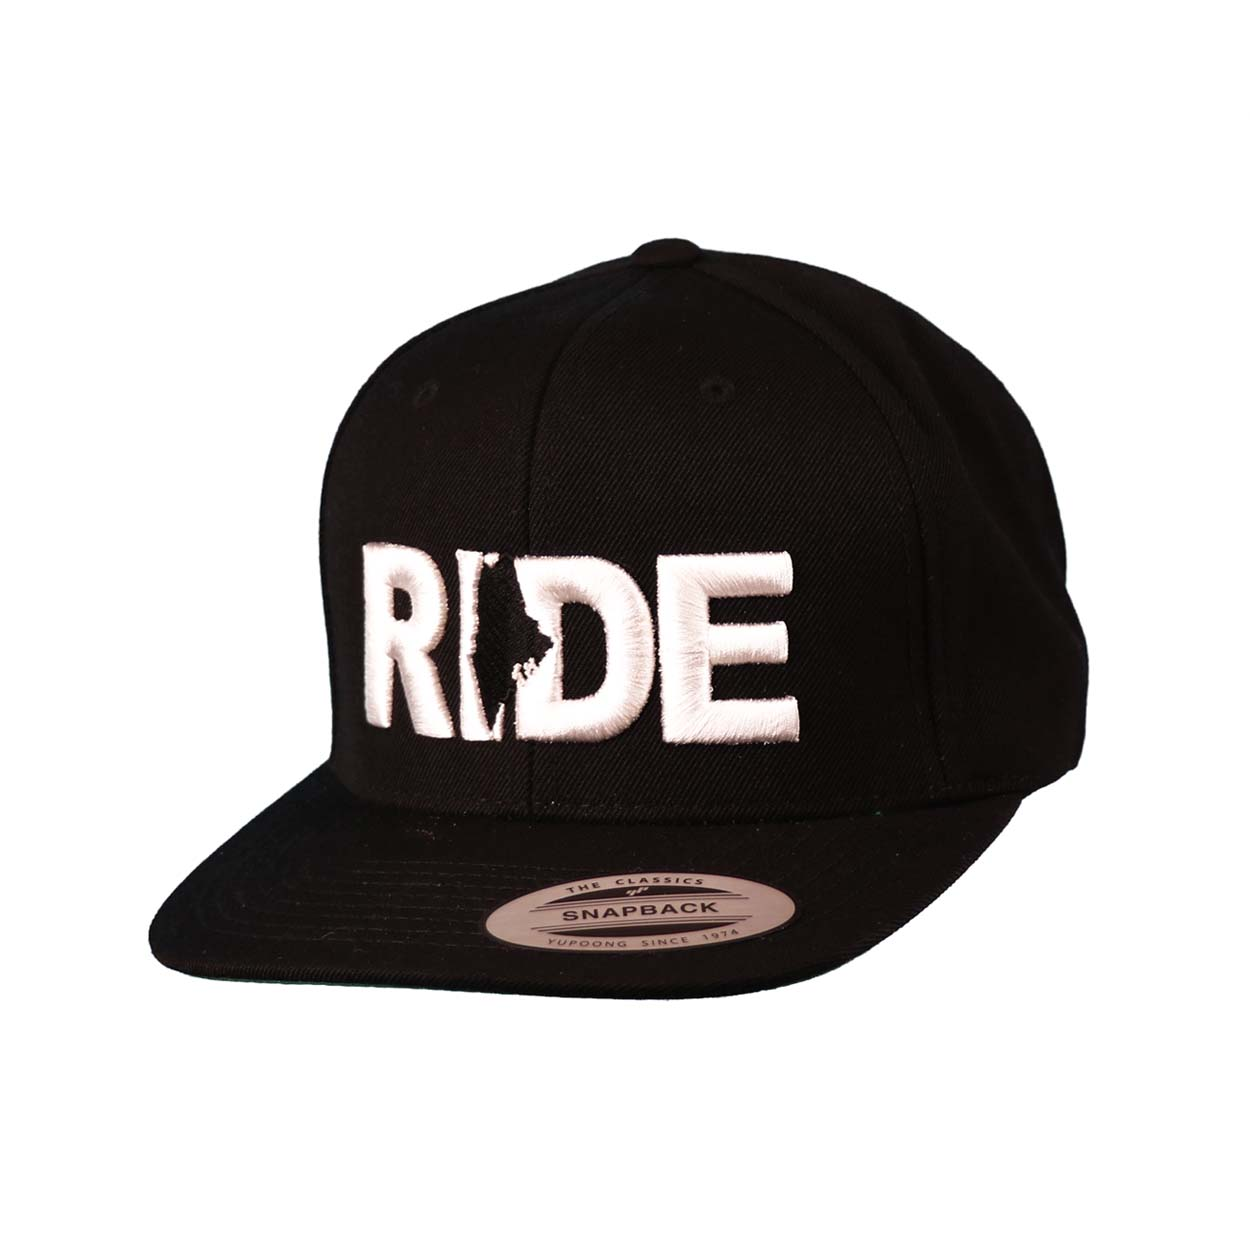 Ride Maine Classic Embroidered  Snapback Flat Brim Hat Black/White